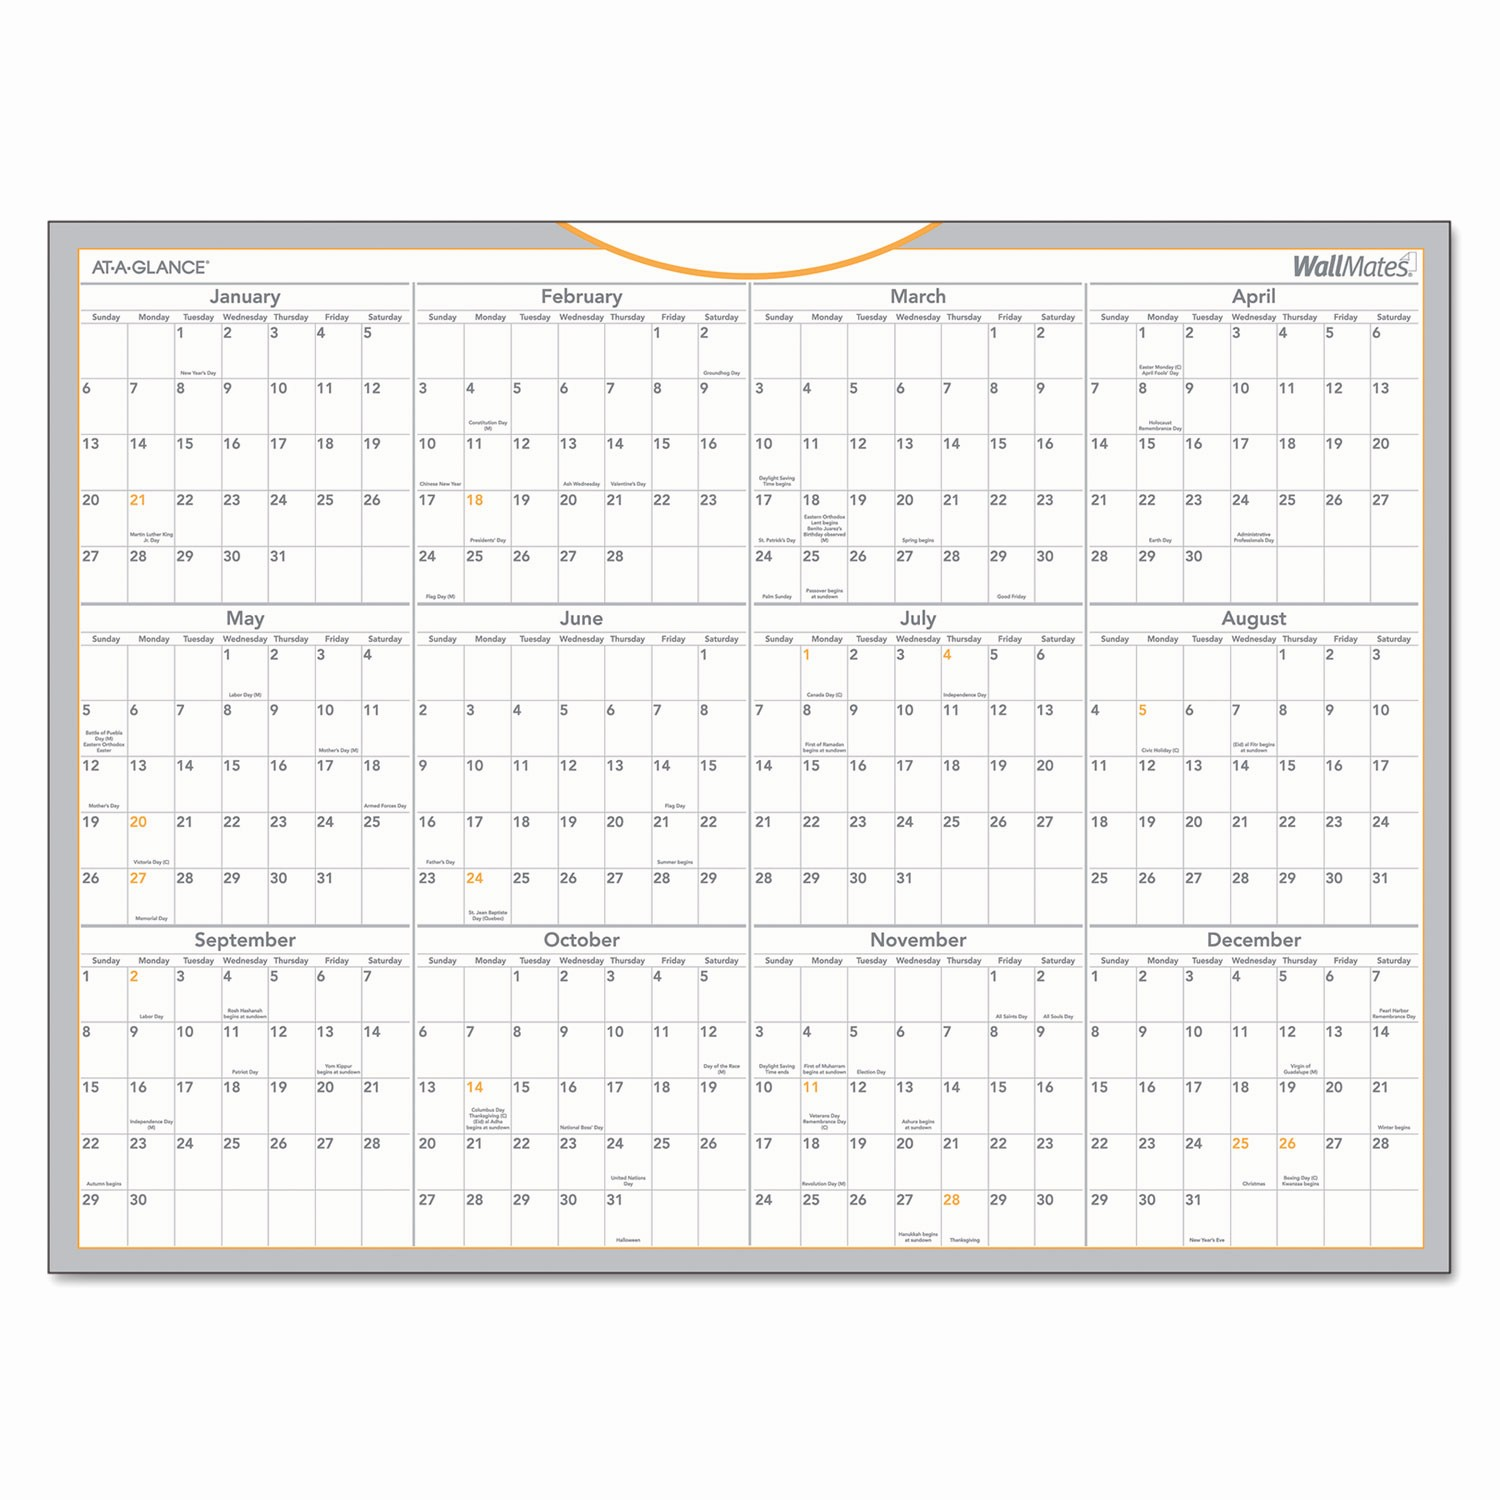 At A Glance Yearly Calendars Beautiful Wallmates Self Adhesive Dry Erase Yearly Calendar by at A